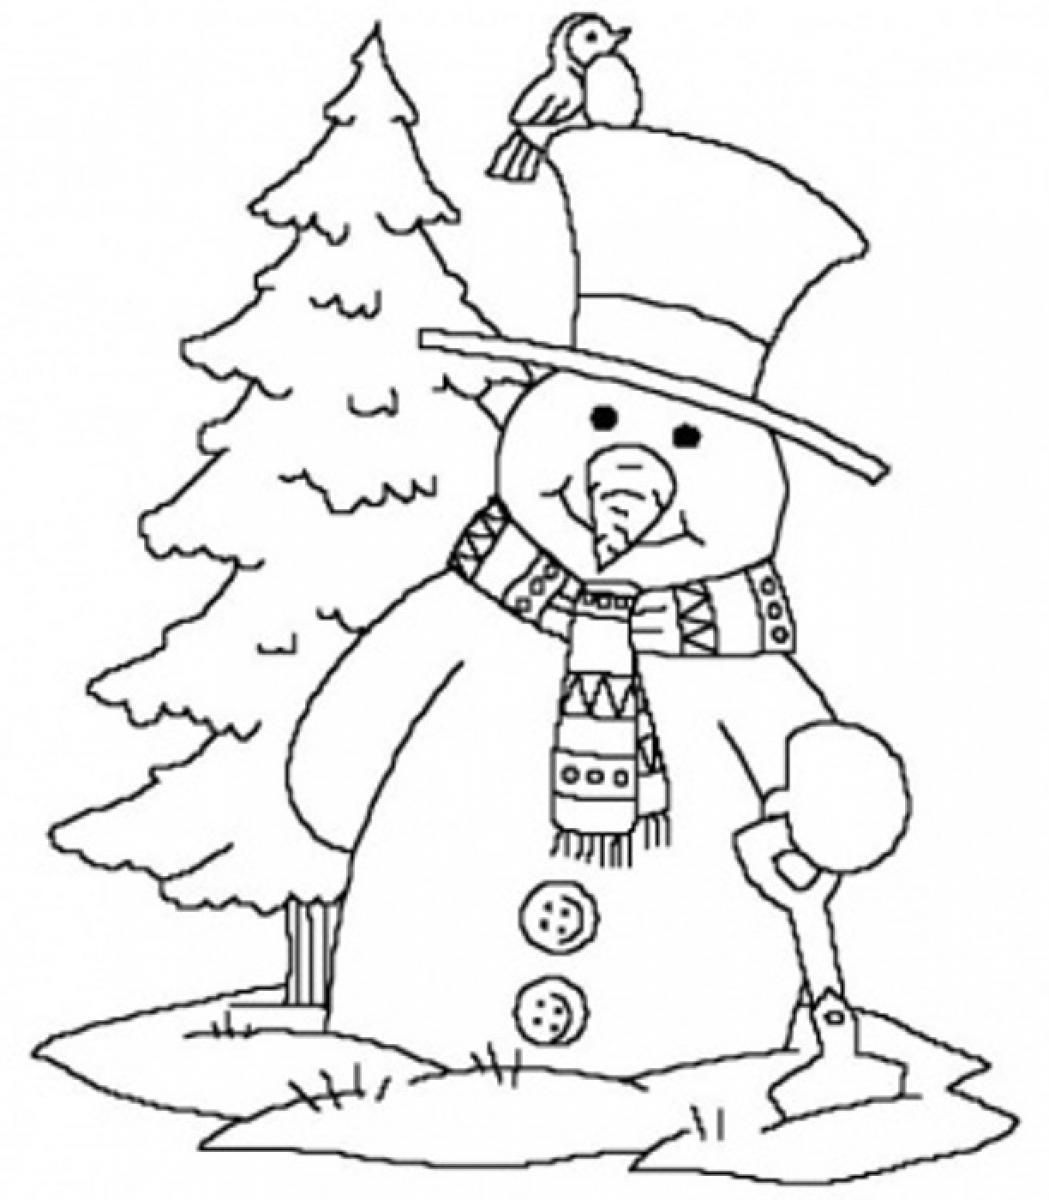 Printable Winter Coloring Pages Unicorn Coloring Pages Snowman Coloring Pages Coloring Pages Winter